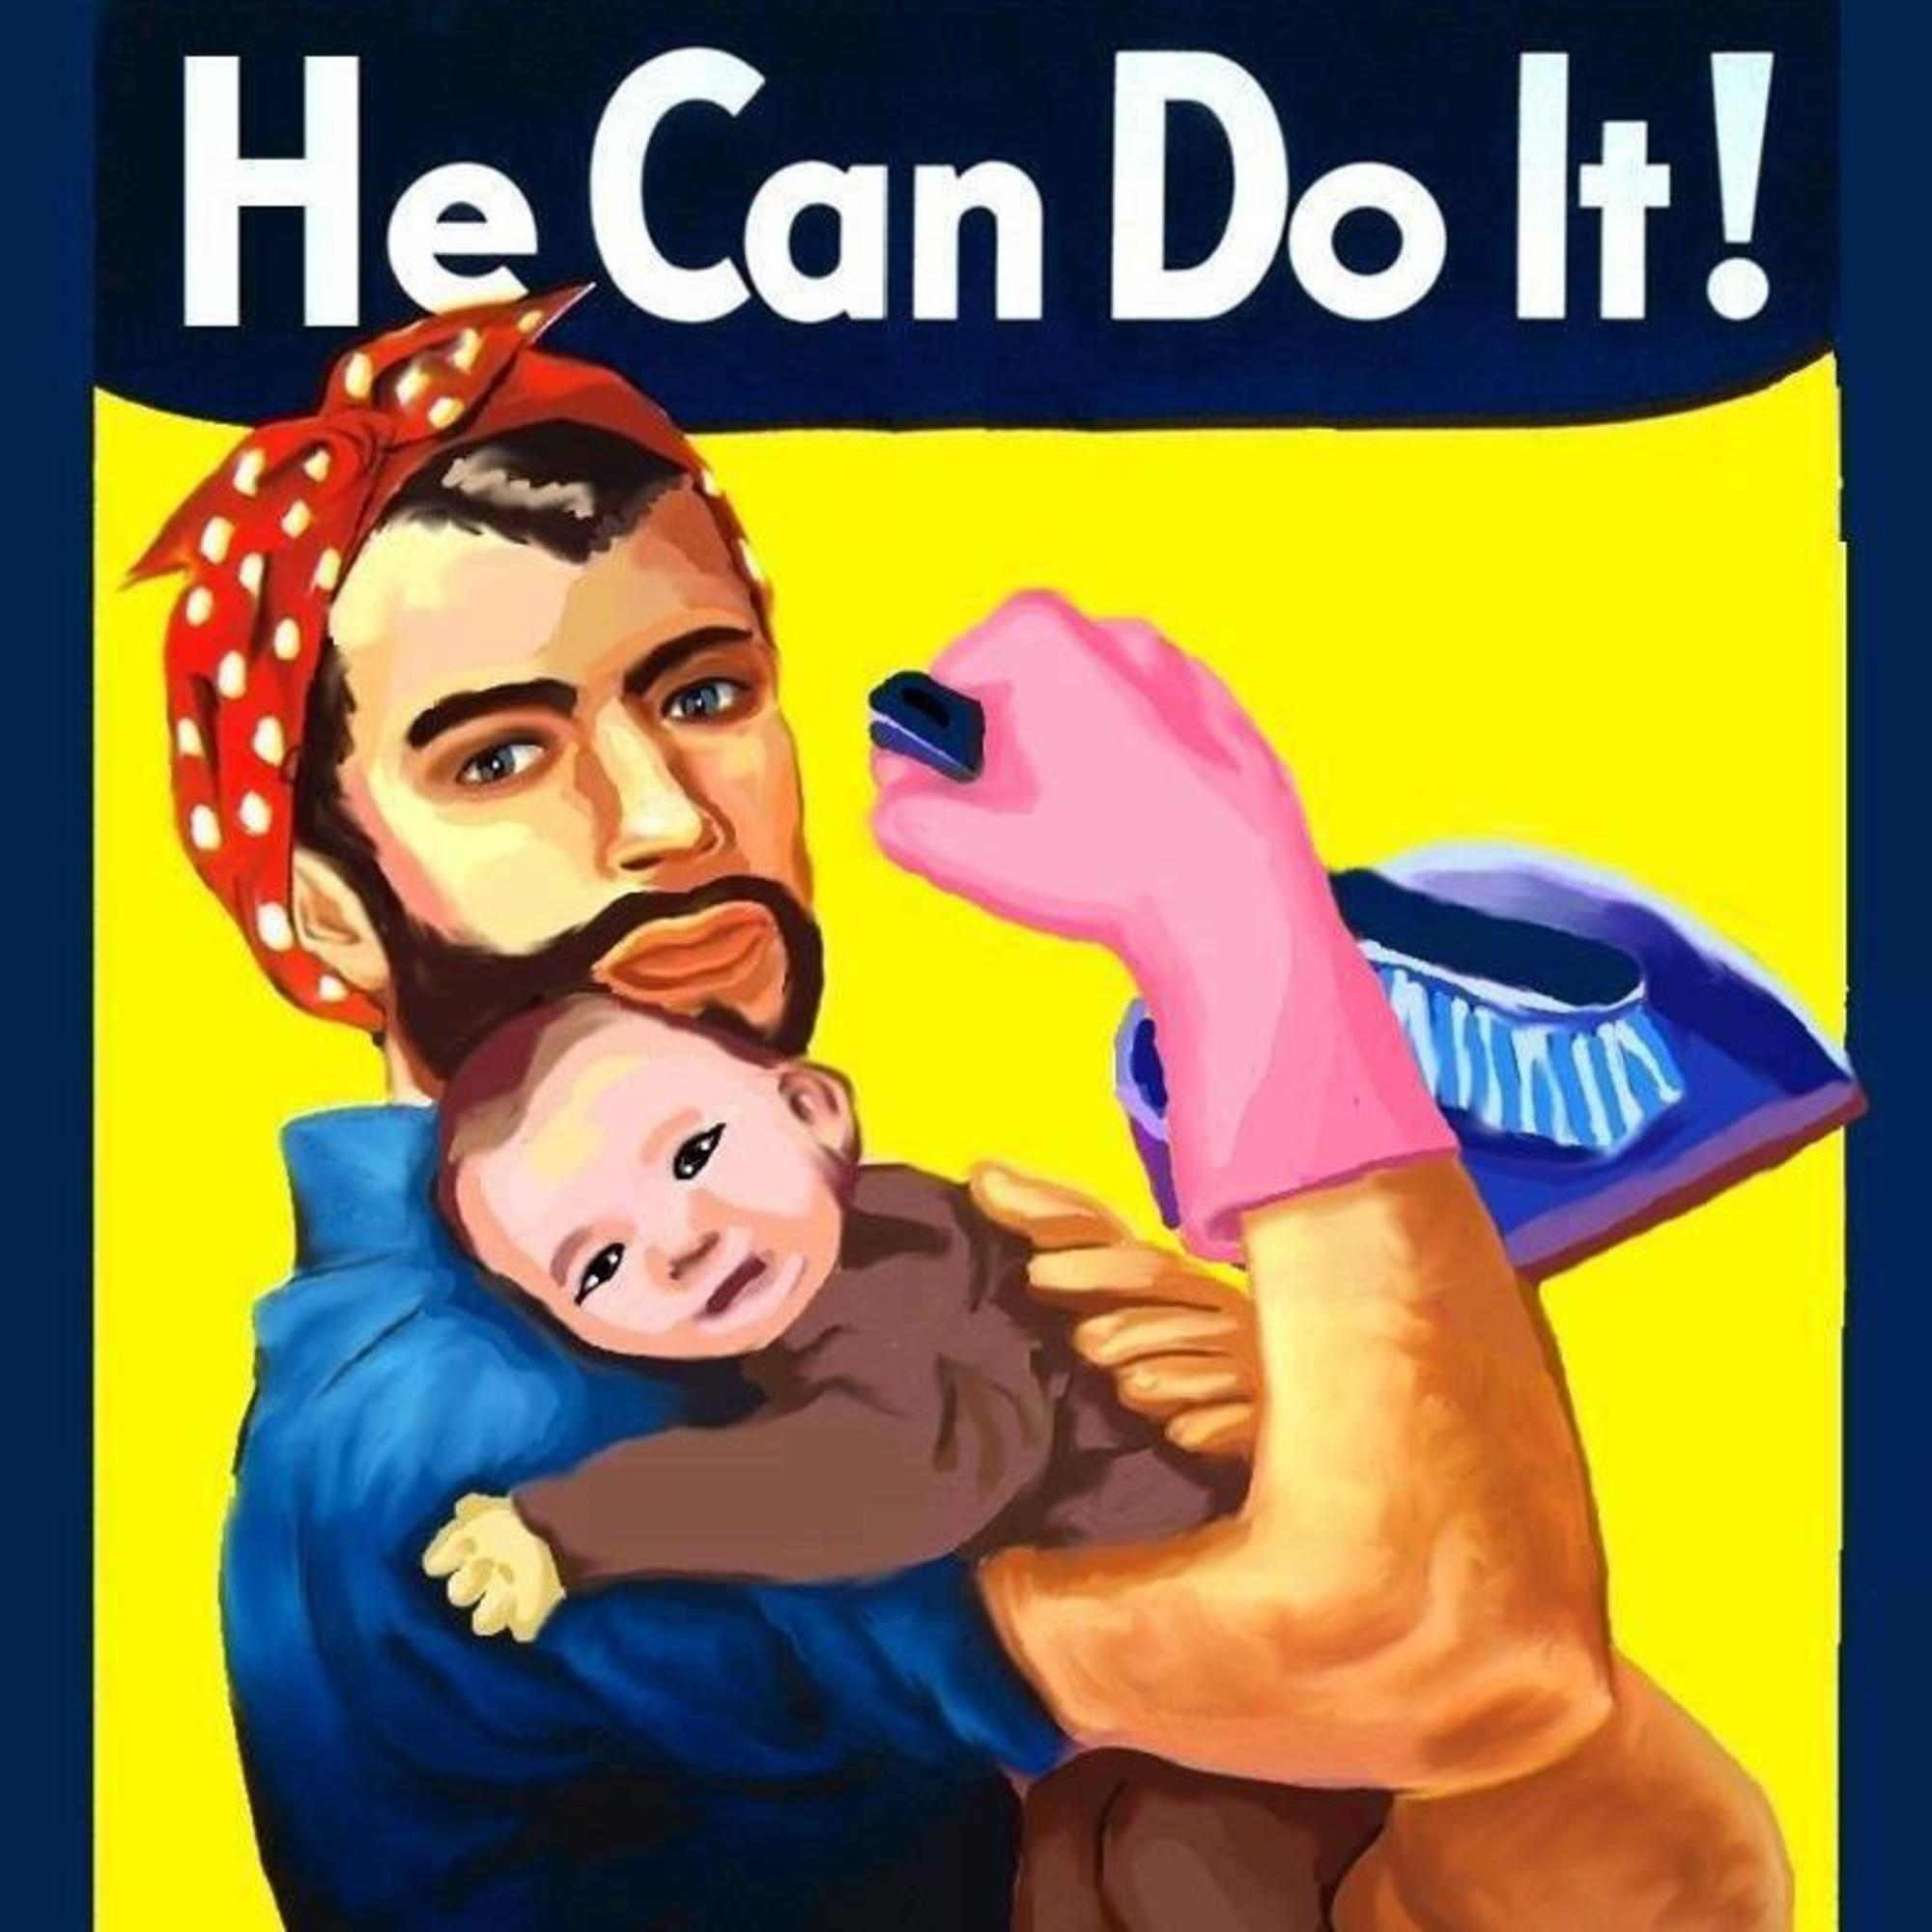 He can do it! Gender roles